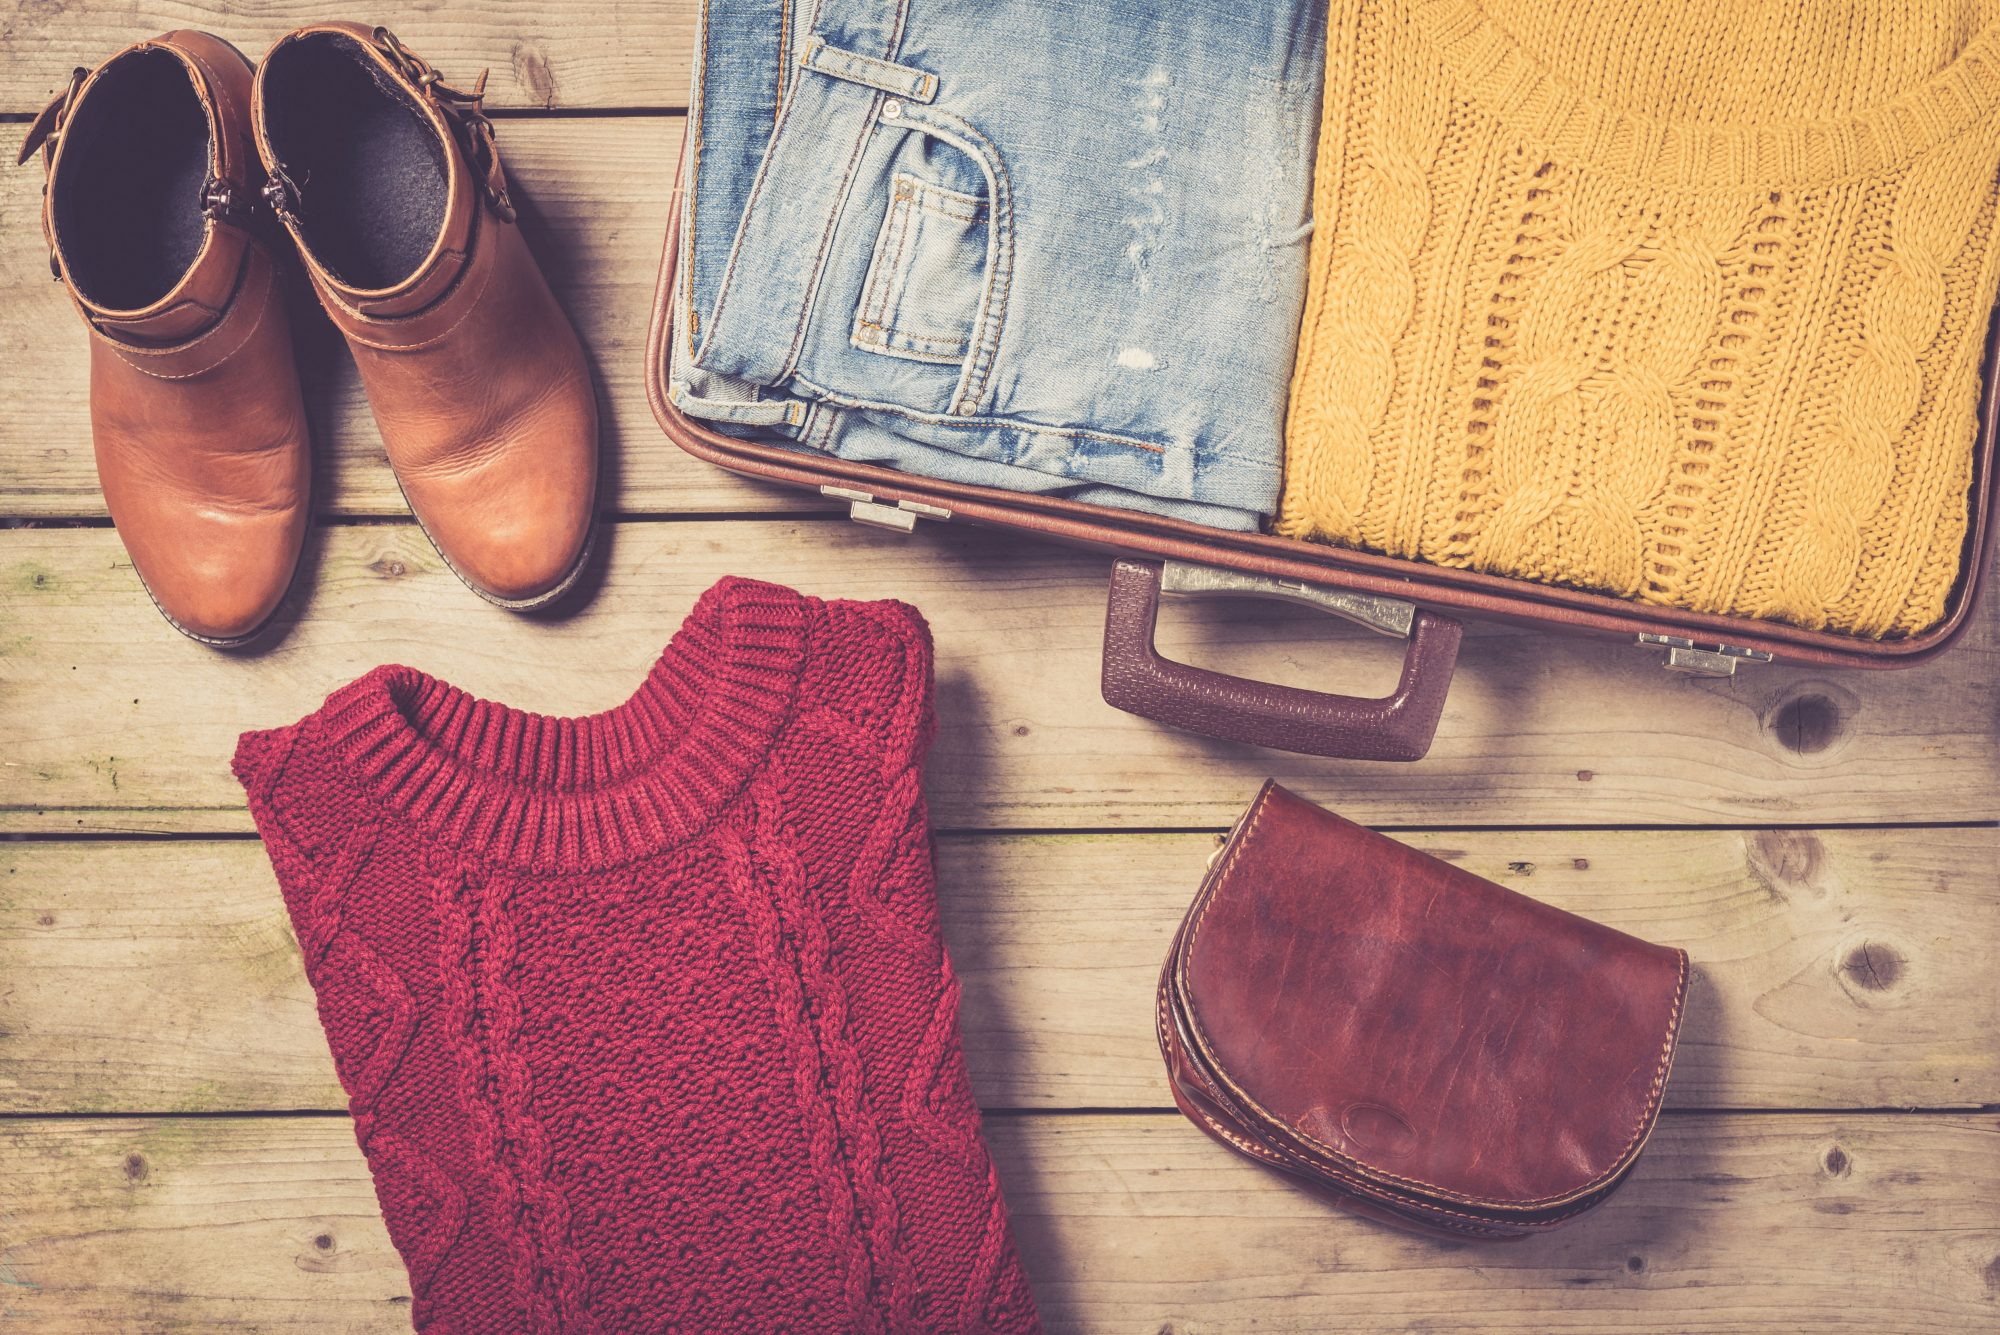 Open Suitcase with Winter Clothes